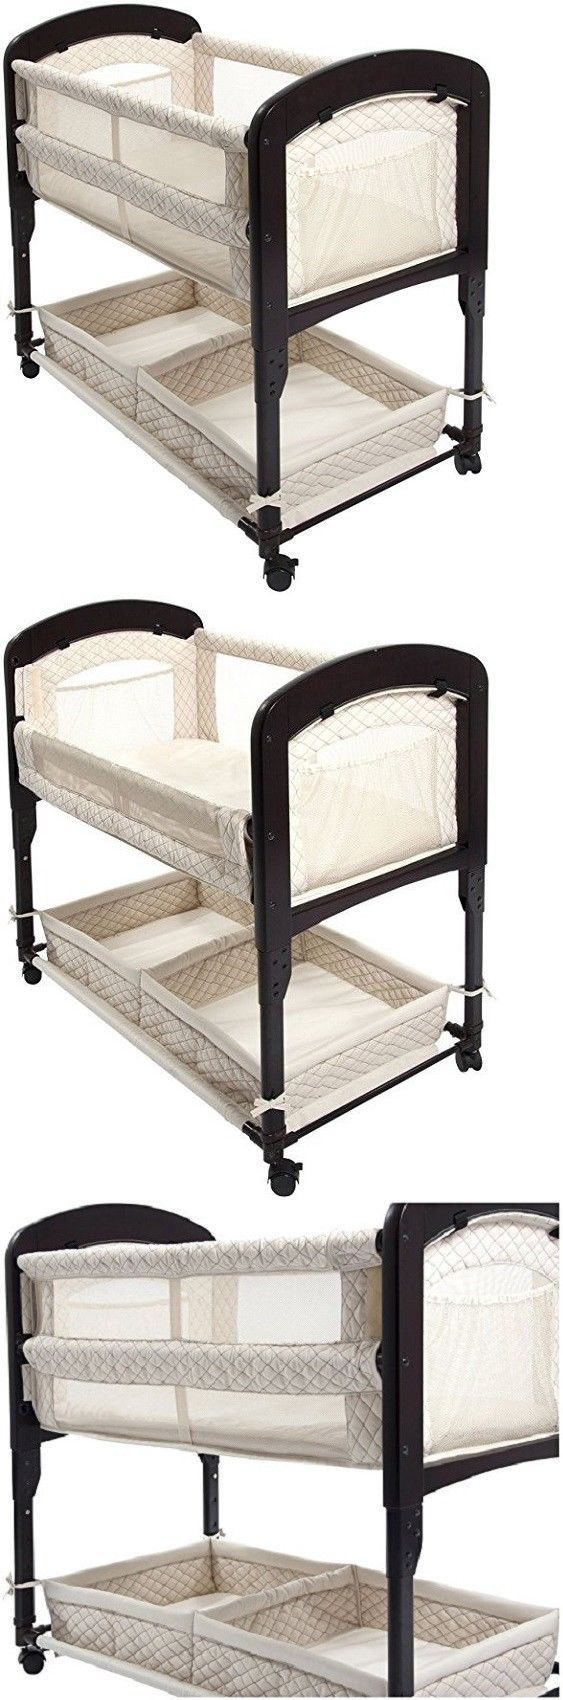 Baby Co-Sleepers 121152: Baby Crib Bassinet Bed Sleeper Cradle Infant Child Newborn Nursery Furniture Kit -> BUY IT NOW ONLY: $252.99 on eBay!